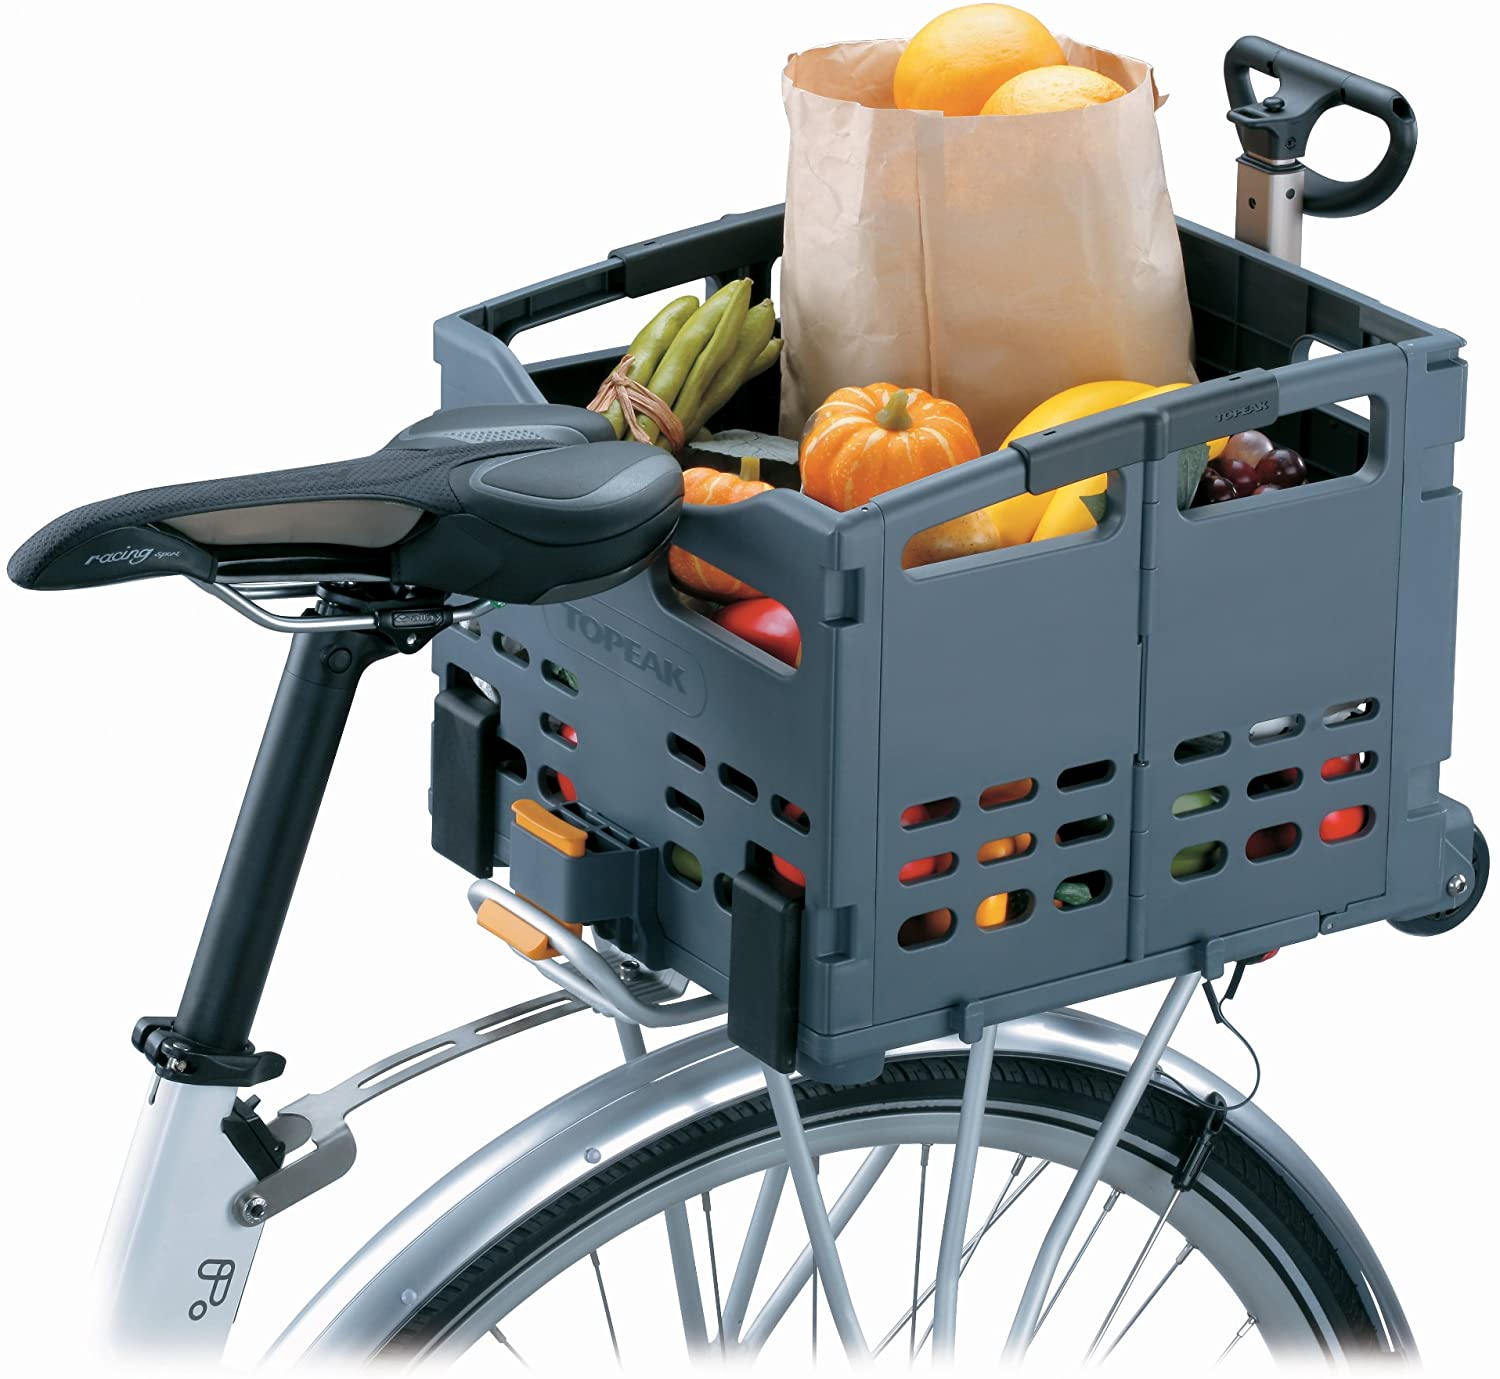 Topeak Trolley Tote Folding Bike Basket